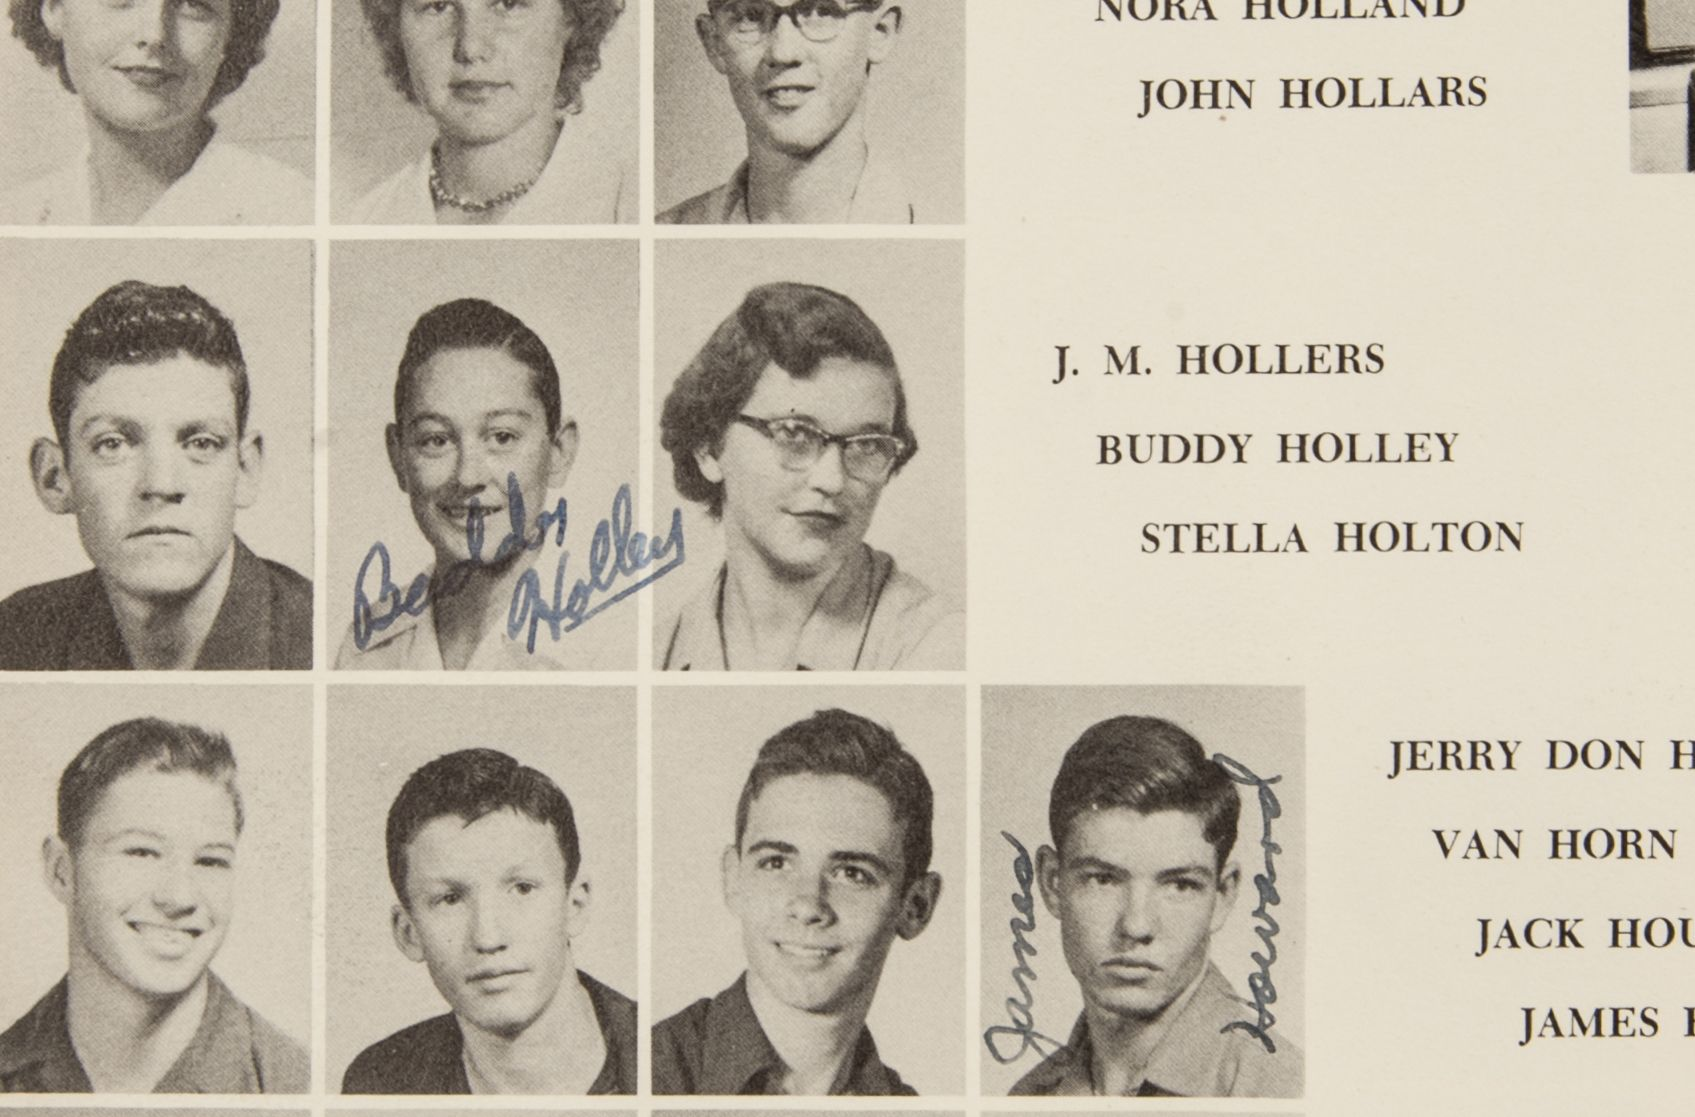 lot detail buddy holly vintage signed and inscribed x buddy holly vintage signed and inscribed 2x original junior year high school yearbook